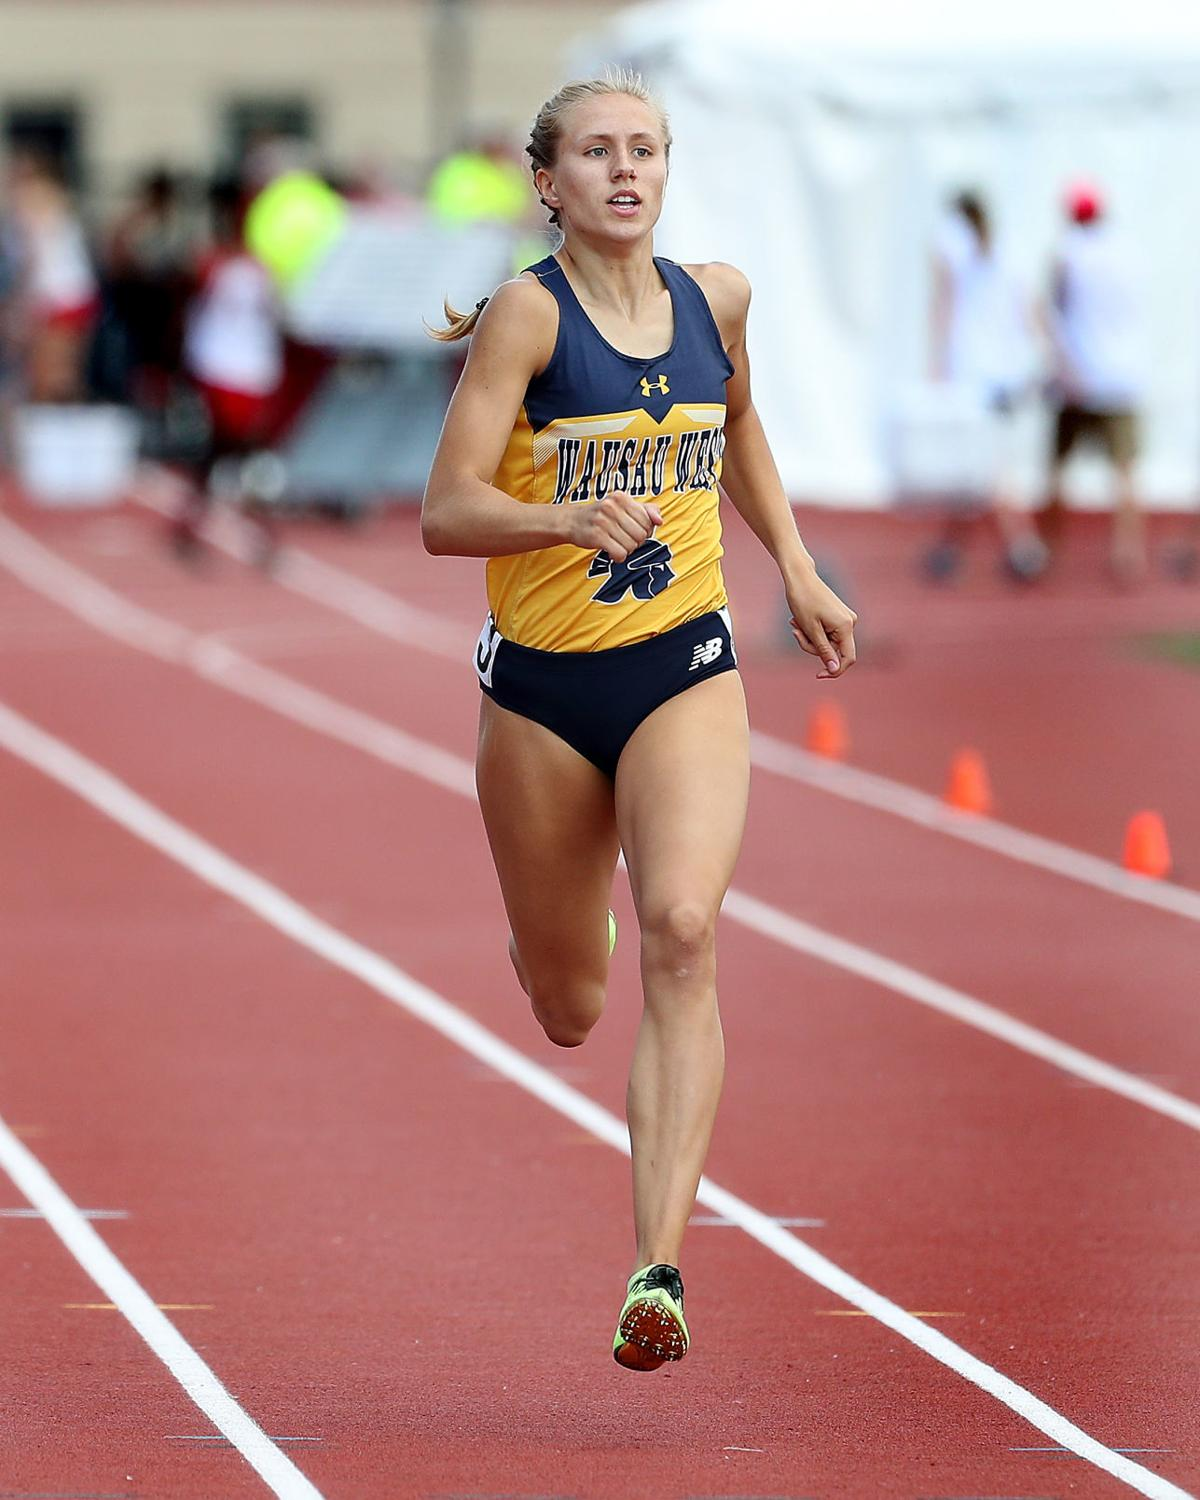 Wausau West's Brooke Jaworski